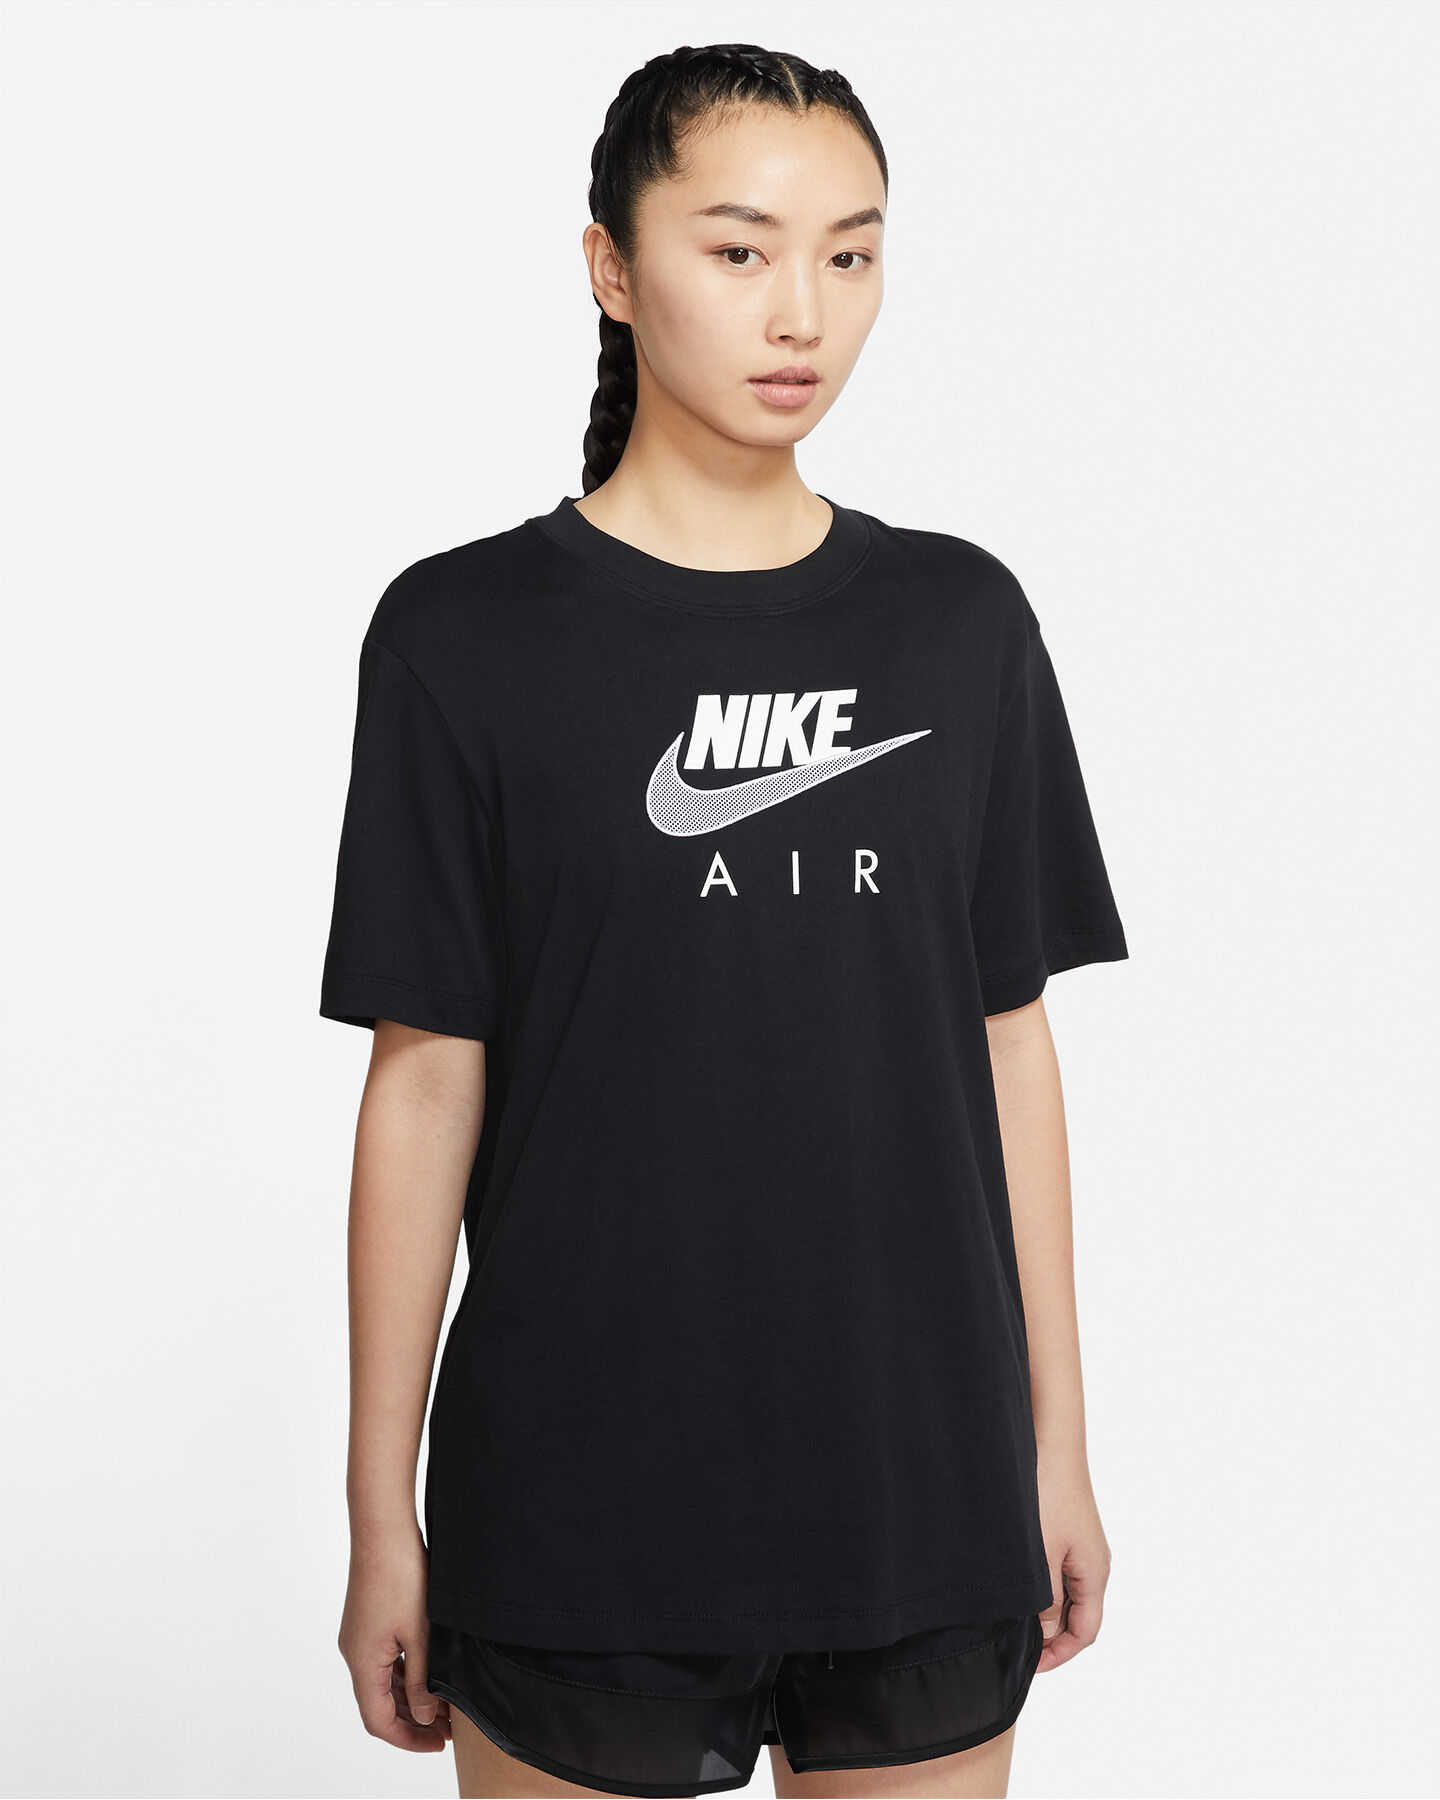 T-Shirt NIKE LONG AIR W S5267655 scatto 0